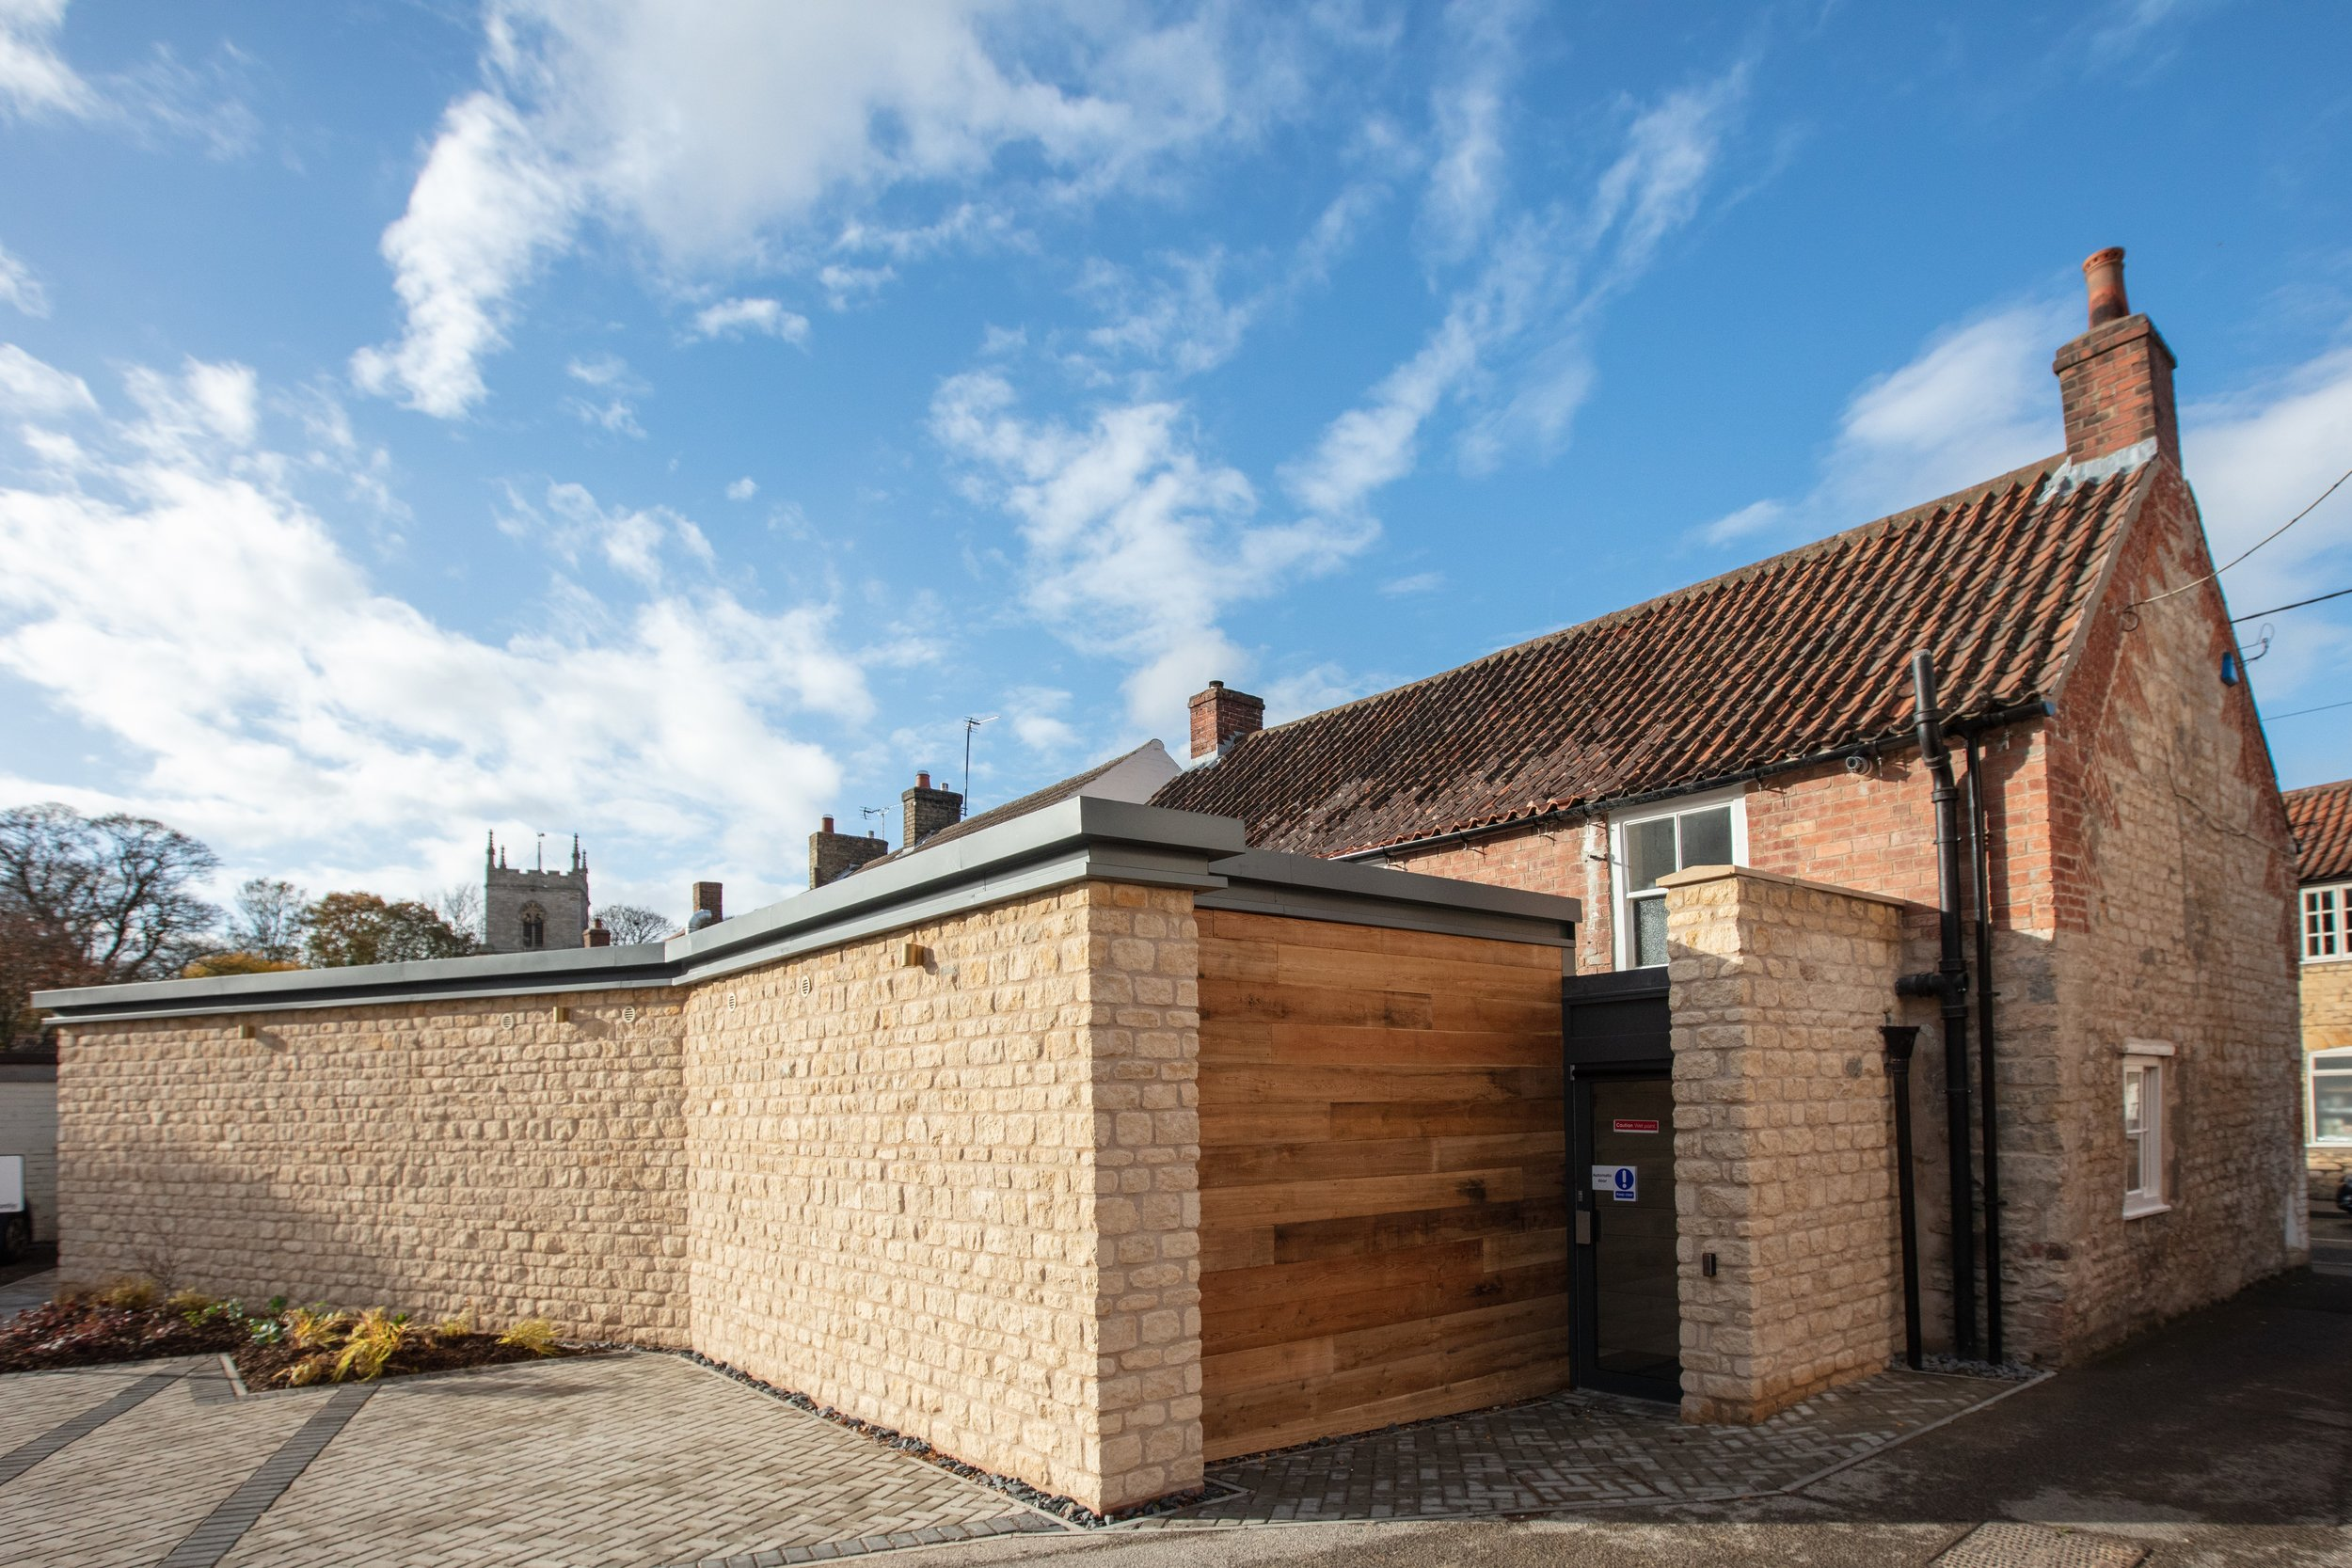 DAVID burgharDt opticians, nettleham  extension - to a grade II listed building